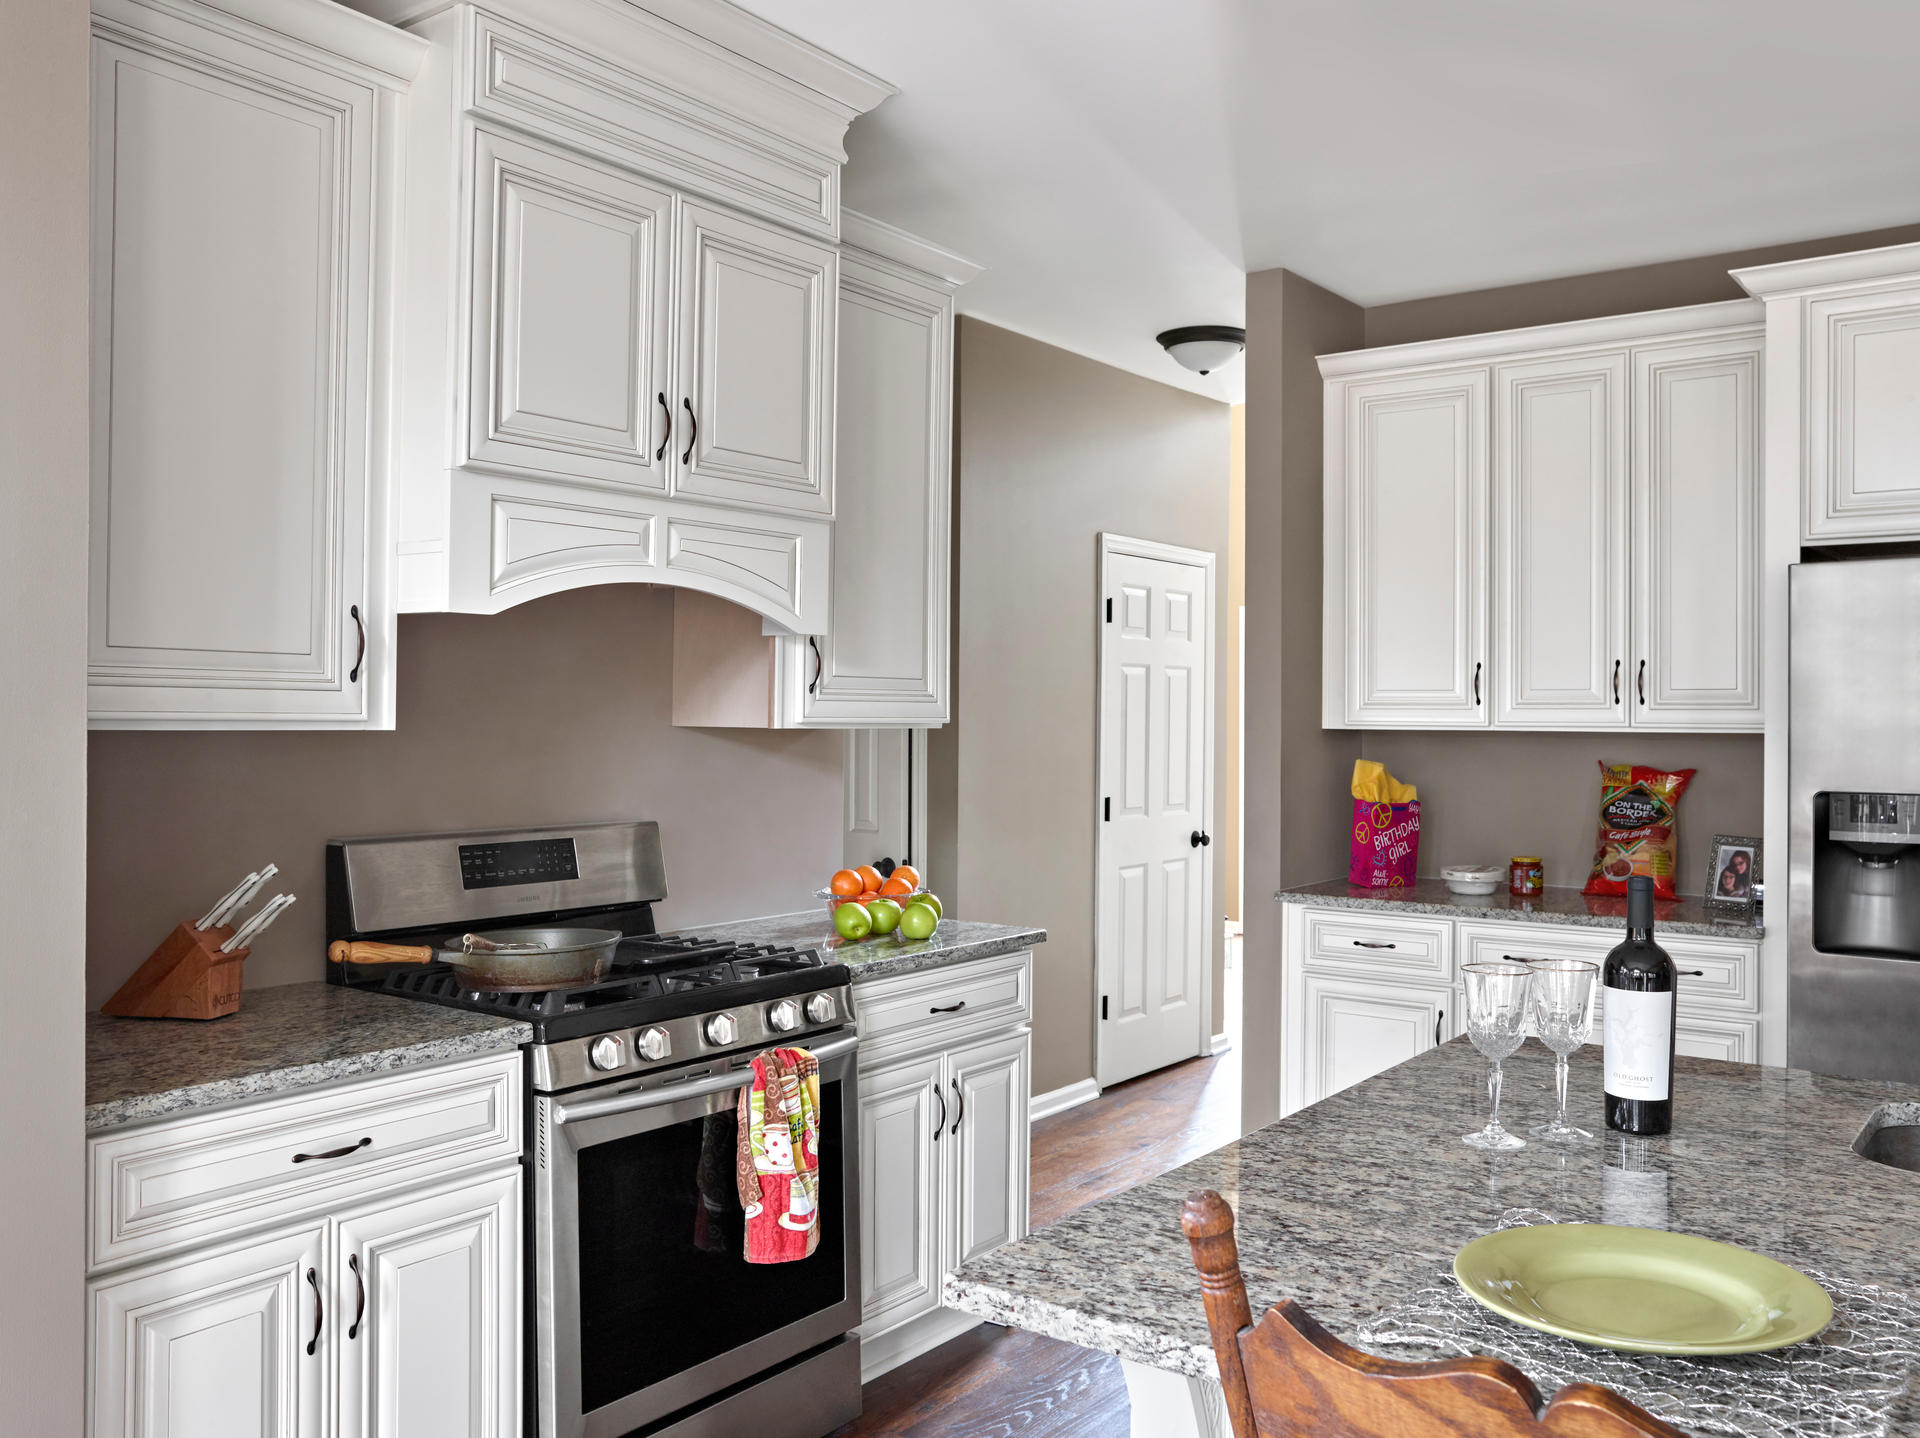 Us Stone Outlet Cabinets & Countertops Of Baton Rouge. What Is The Kitchen Cabinet. Soft White Kitchen Cabinets. Refacing Kitchen Cabinets Ideas. Battery Operated Under Cabinet Lighting Kitchen. Kitchen Cabinet Renovations. Design For Kitchen Cabinets. Magnetic Catches For Kitchen Cabinets. Kitchen Cabinets Shelves